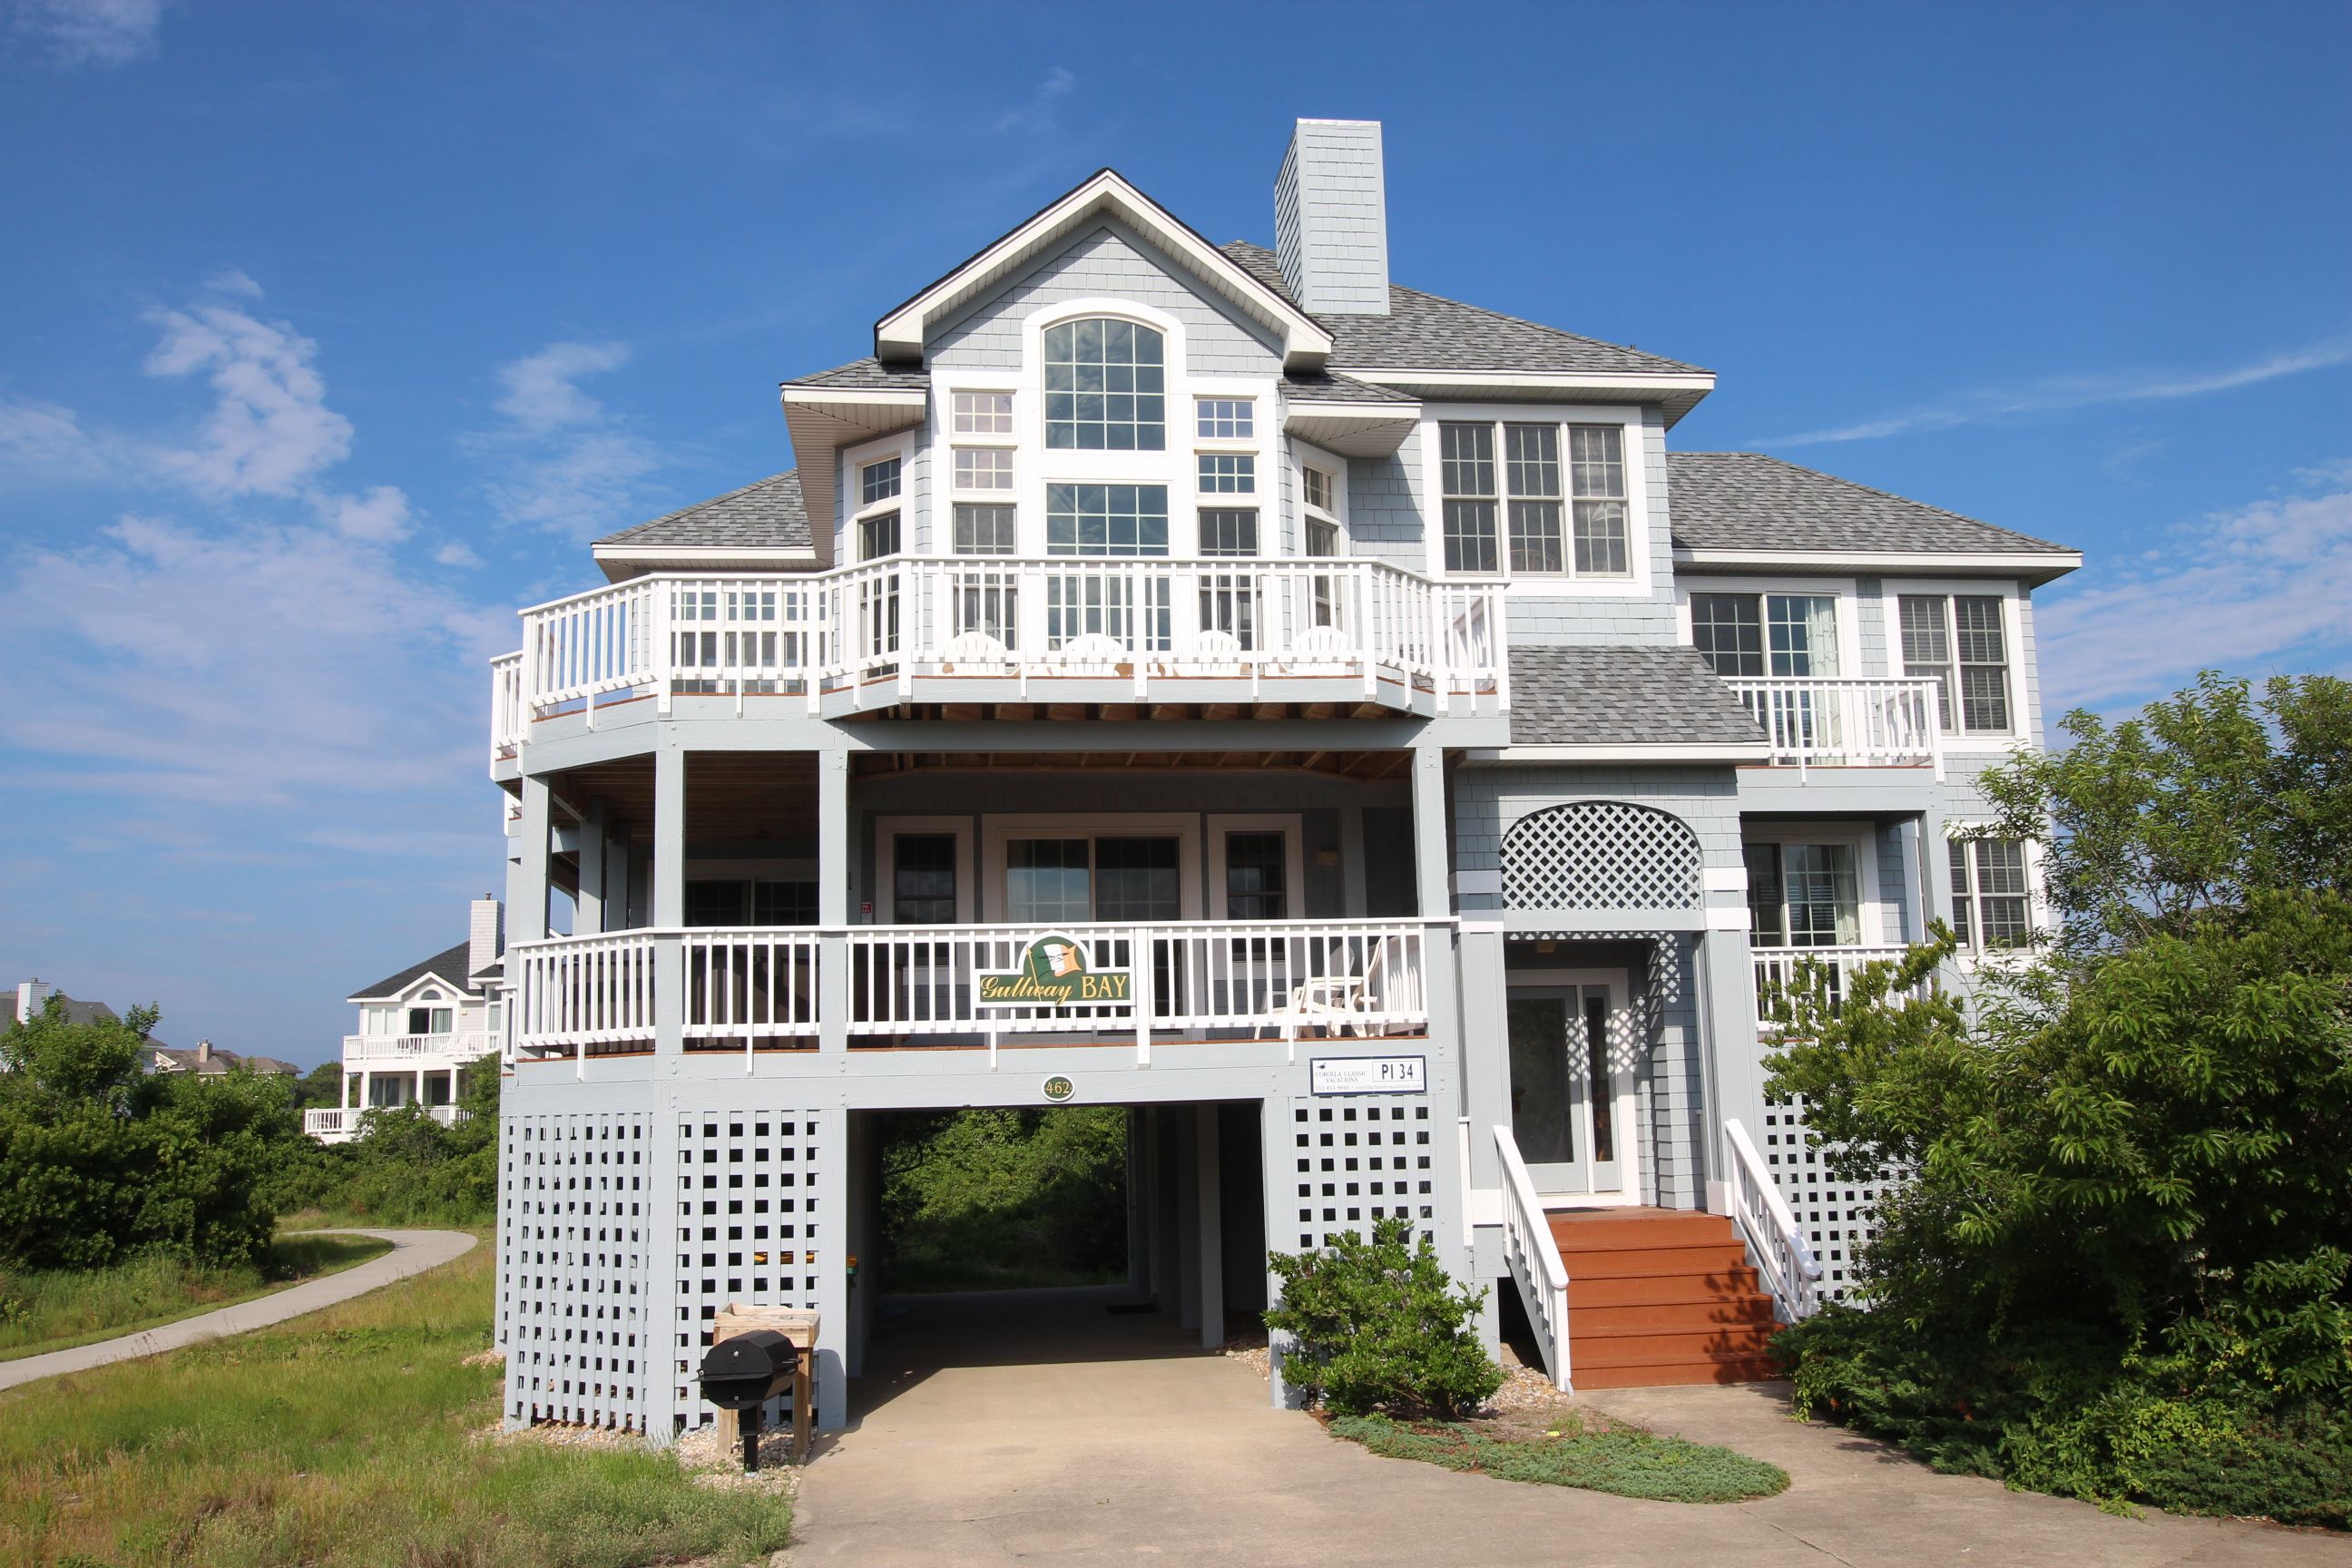 Gullway Bay 5 Bedroom 4 5 Bathroom Semi Oceanfront Private Hot Tub Community Pool And Tennis Baby Nc Vacation Rentals Vacation Rental Vacation Home